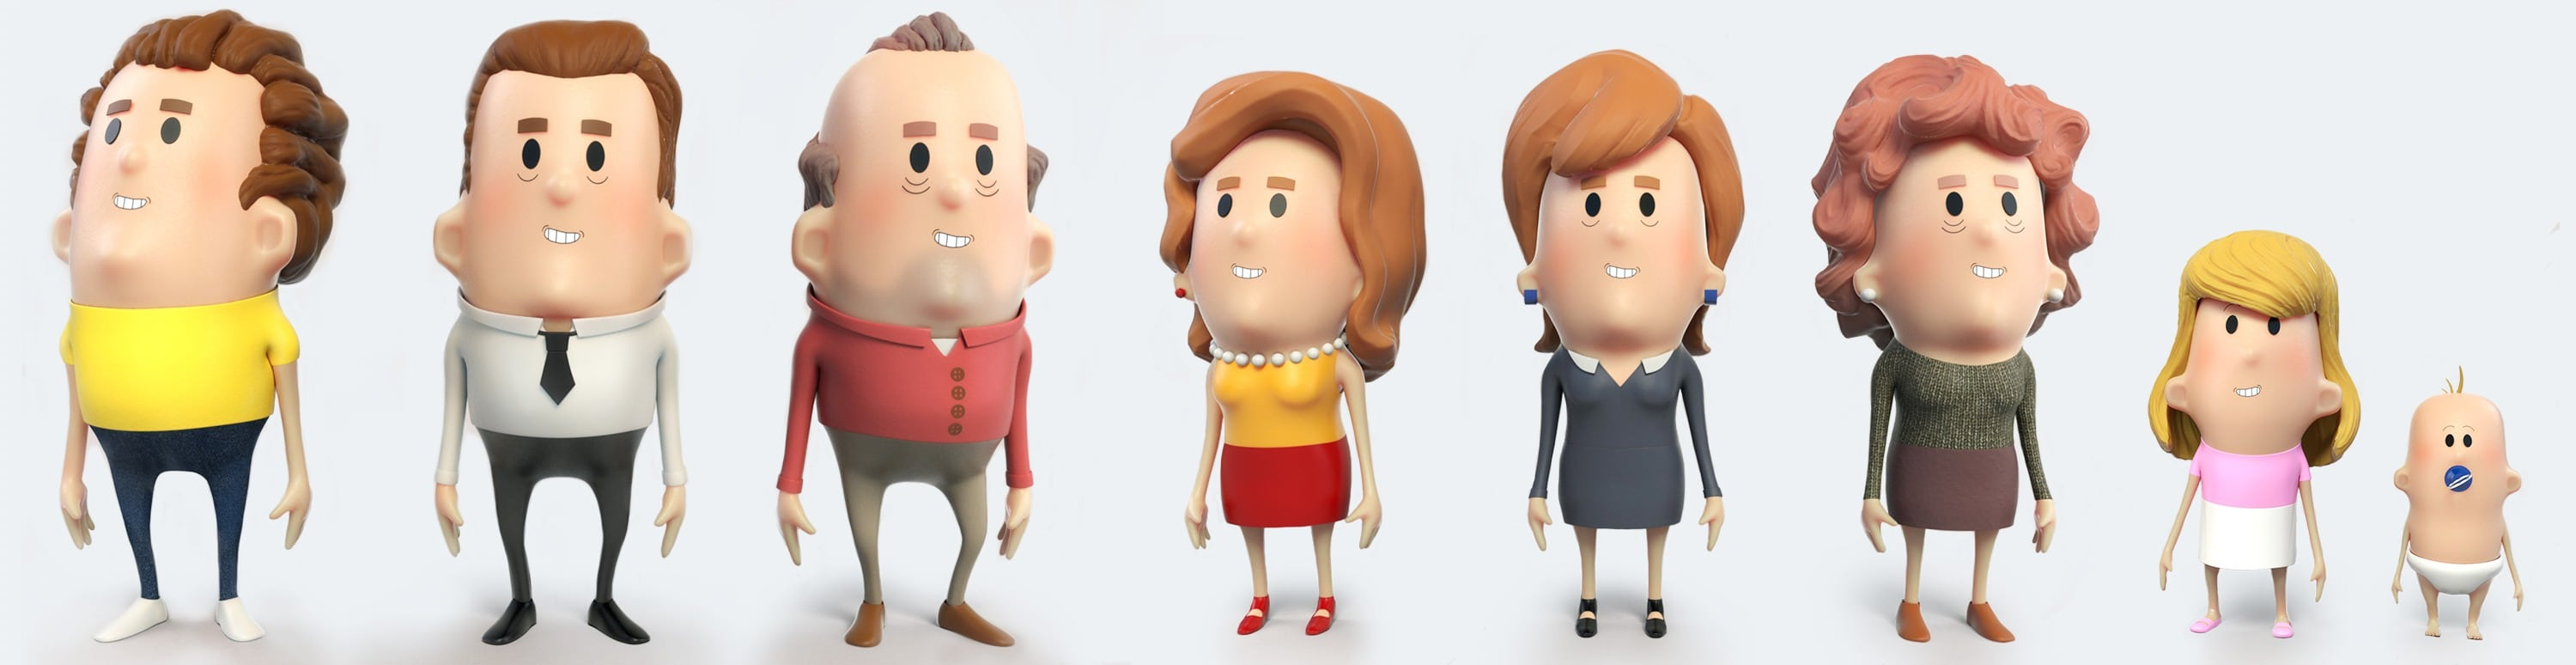 stas3dart-apple-home-improvements-itv-tv-commercial-characters